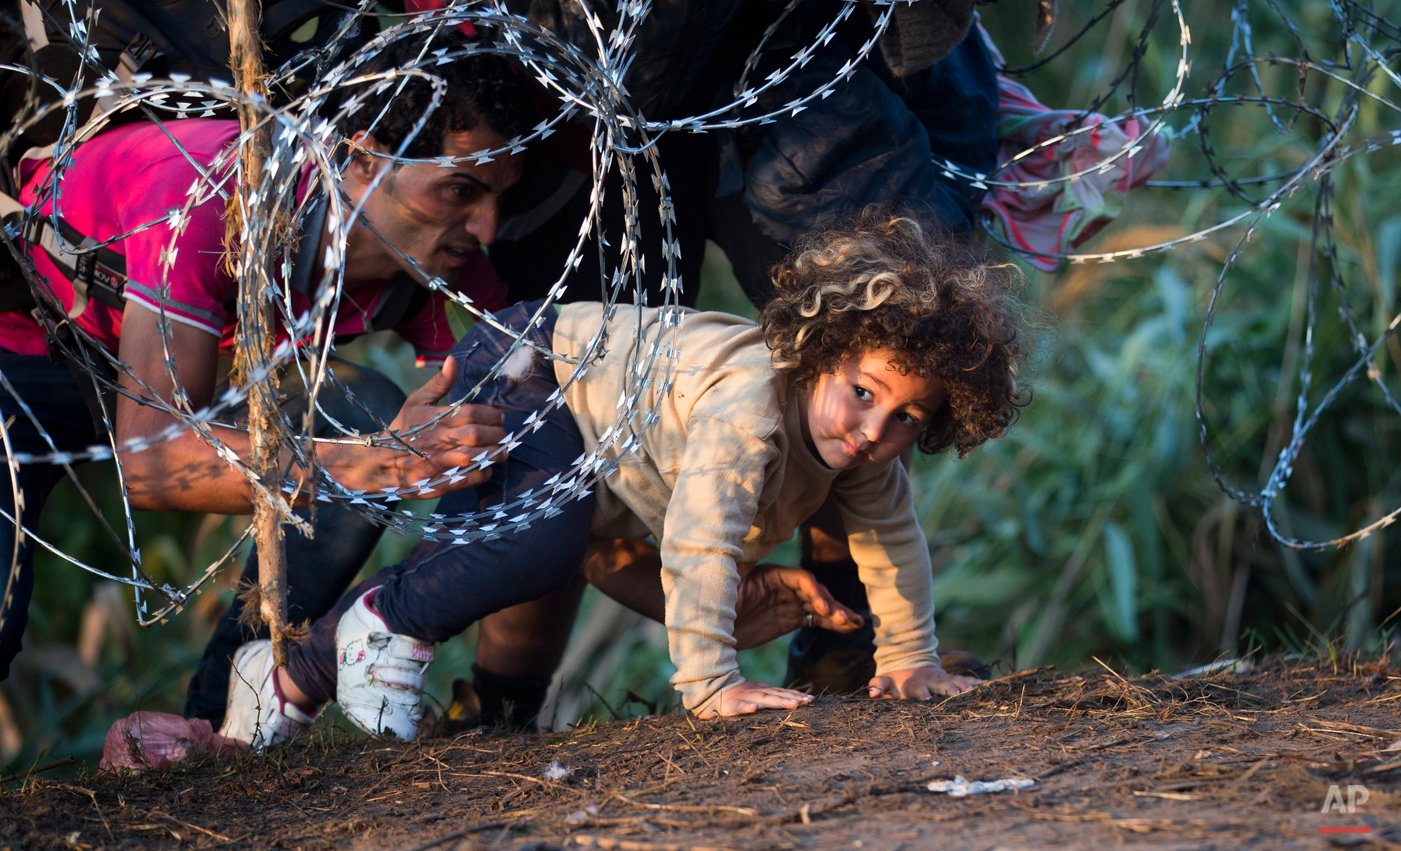 In this Thursday, Aug. 27, 2015 photo, a child is helped cross from Serbia to Hungary through the barbed wire fence near Roszke, southern Hungary. Round the clock, thousands of refugees cross daily along the approximately 110-mile (175-kilometer) border with non-EU member Serbia to the south. (AP Photo/Darko Bandic)